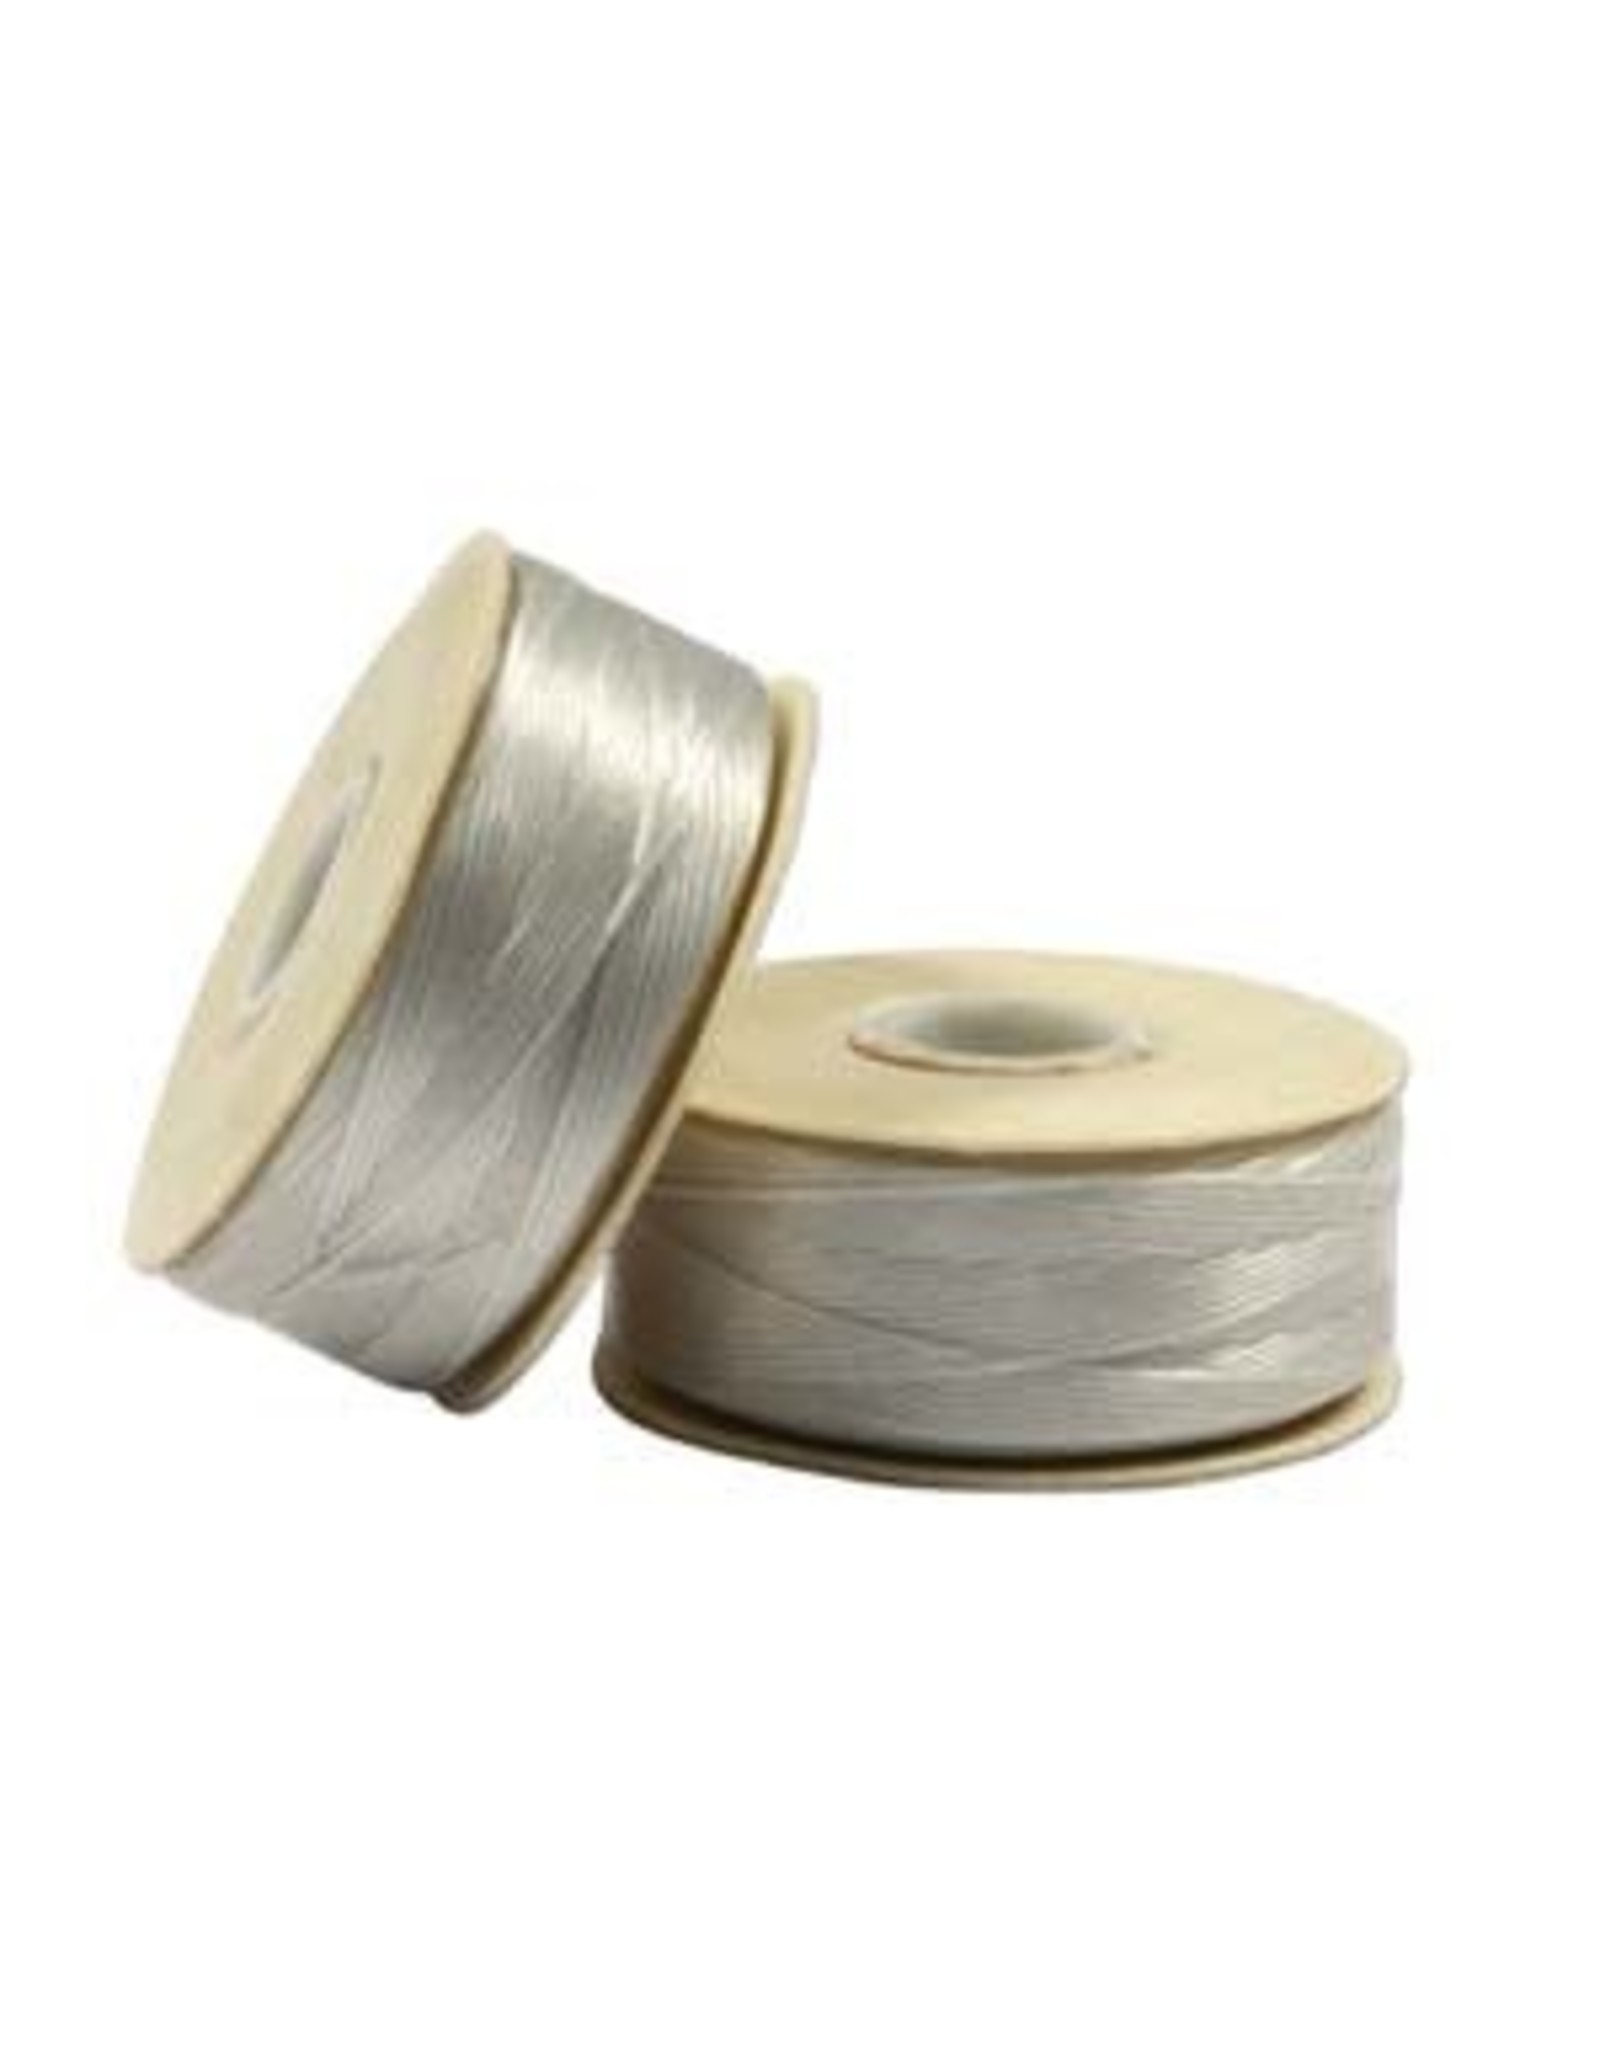 Nymo B'    Sterling Grey  Small Bobbin 66m